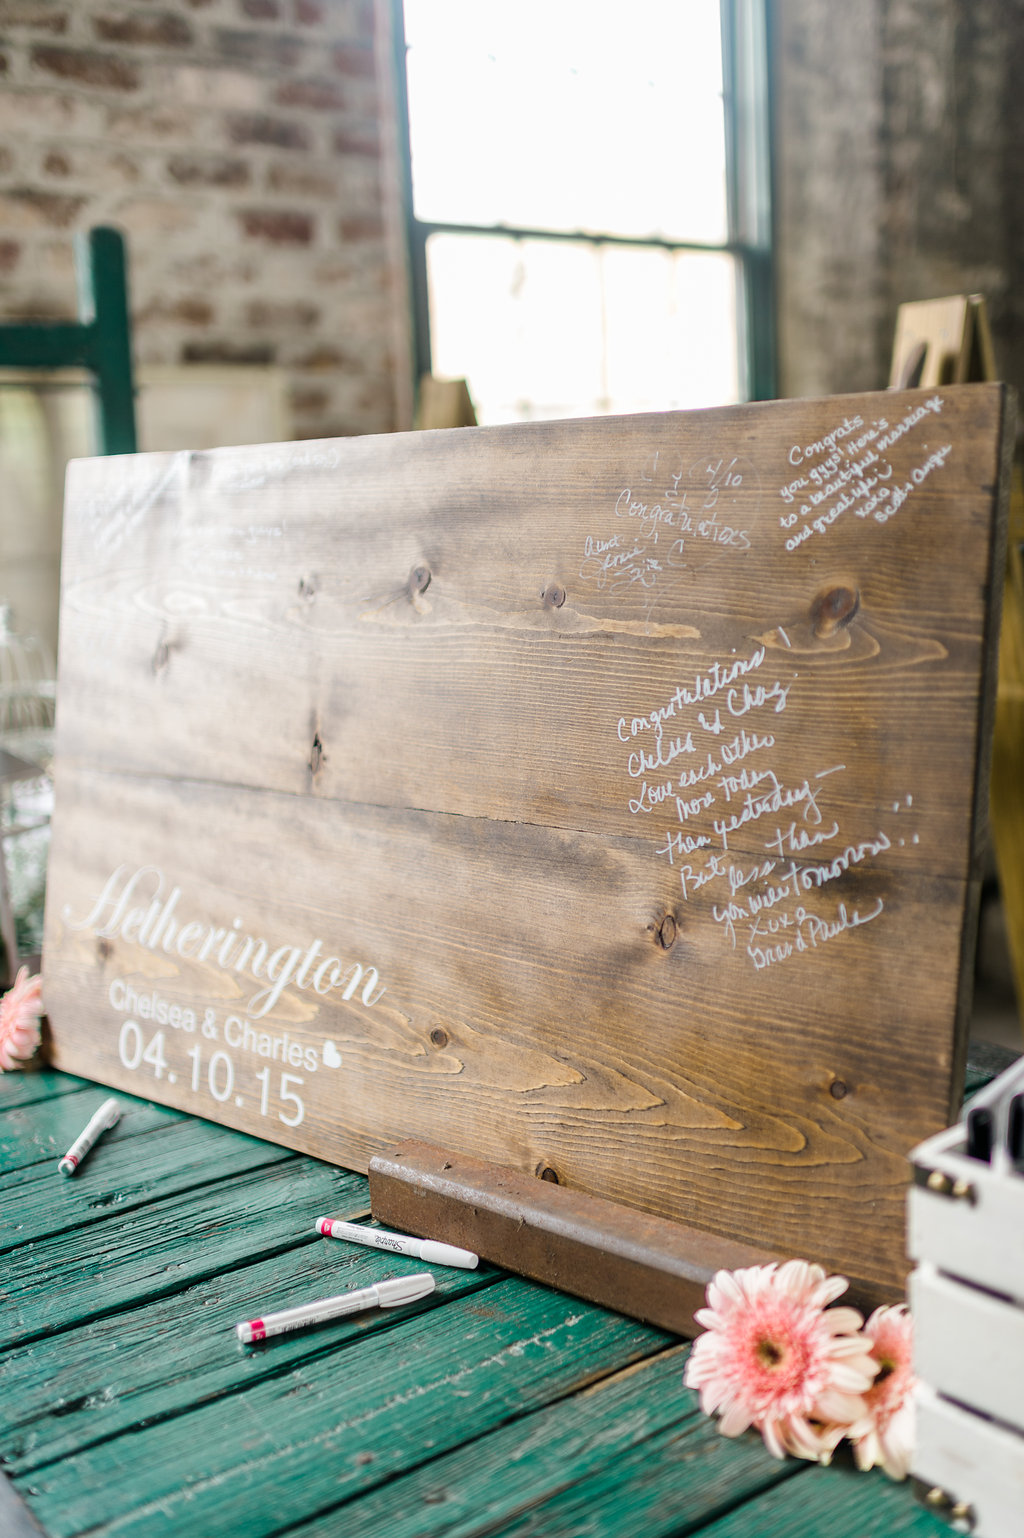 rach-lea-photography-rach-loves-troy-roundhouse-railroad-museum-wedding-ivory-and-beau-savannah-wedding-planner-savannah-weddings-savannah-florist-ivory-and-beau-bridal-boutique-succulent-blush-wedding-30.jpg